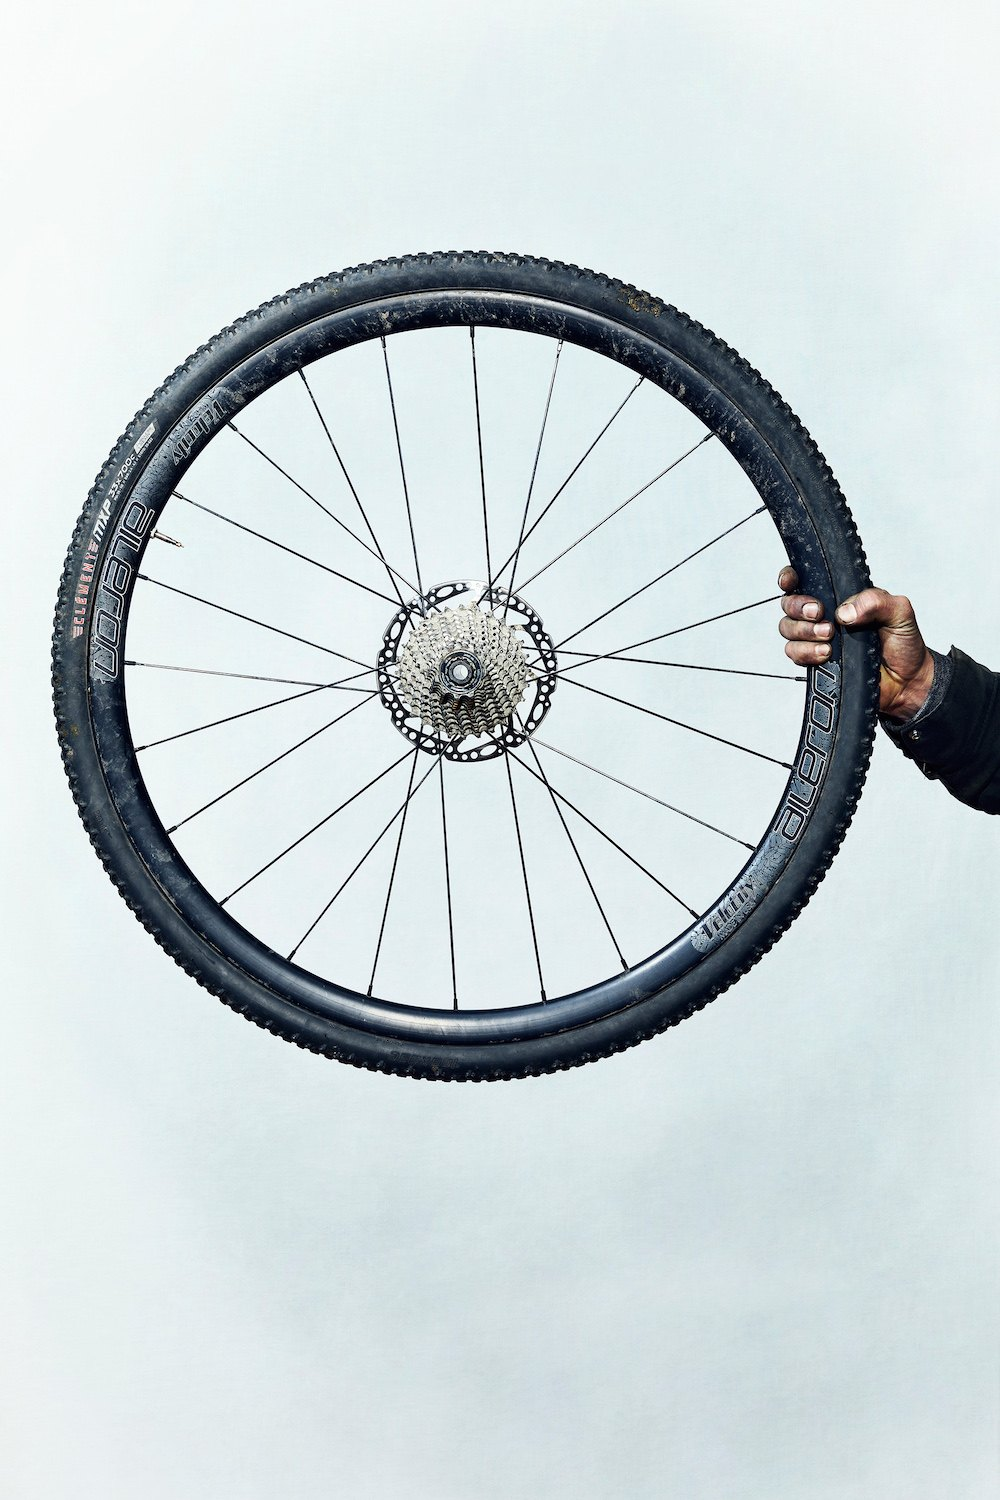 Bicycle-wheel-white-background.jpg